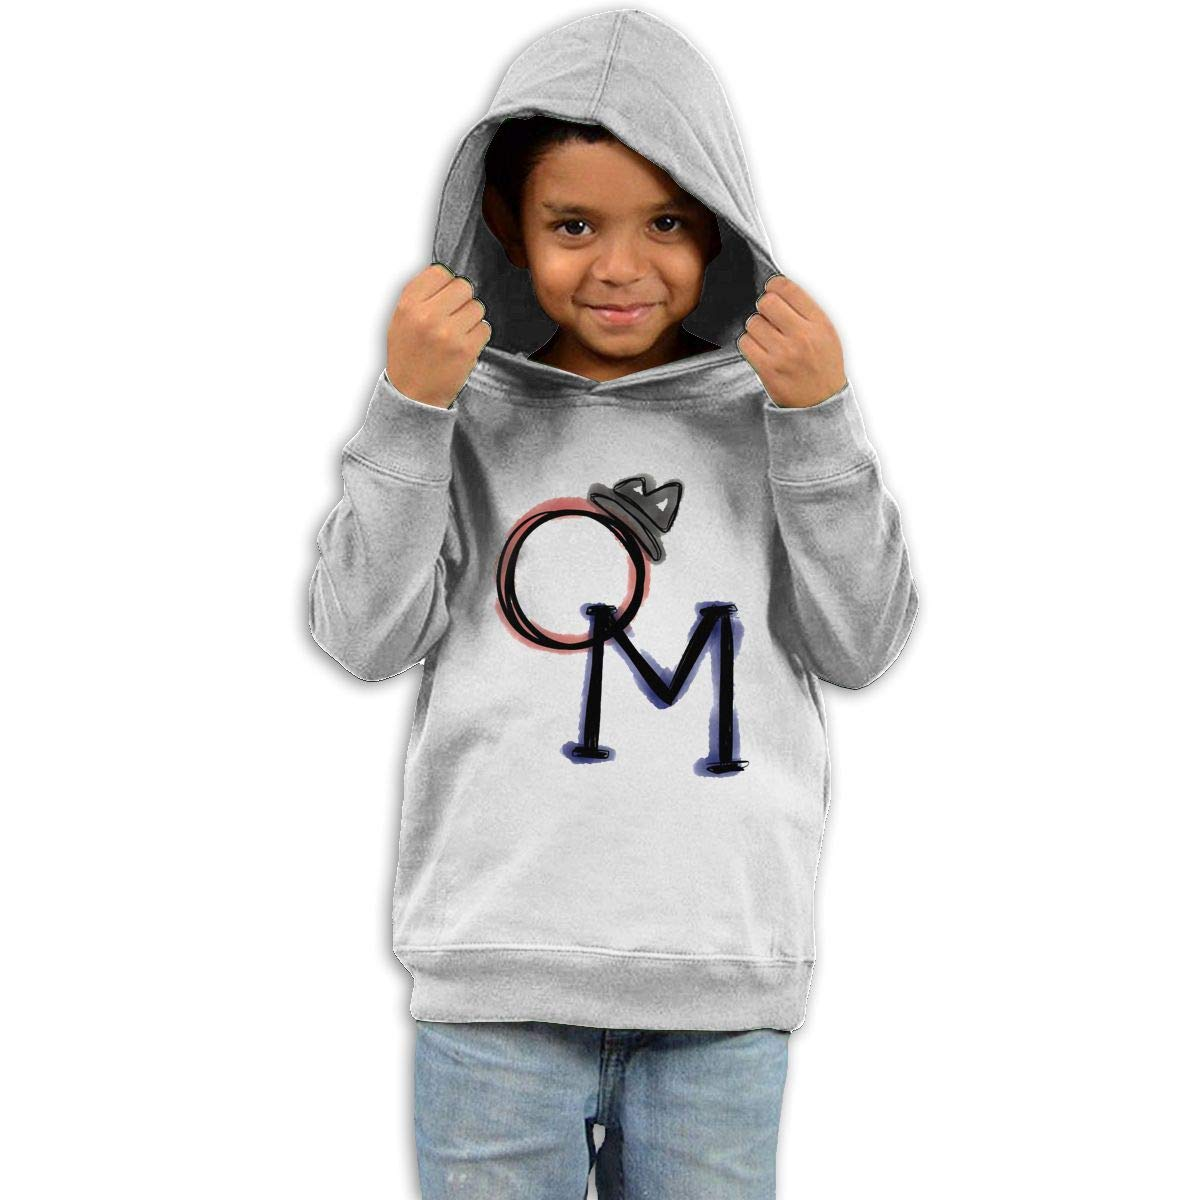 Stacy J. Payne Toddler Olly MURS Will Help You Get More Casual Style 41 White